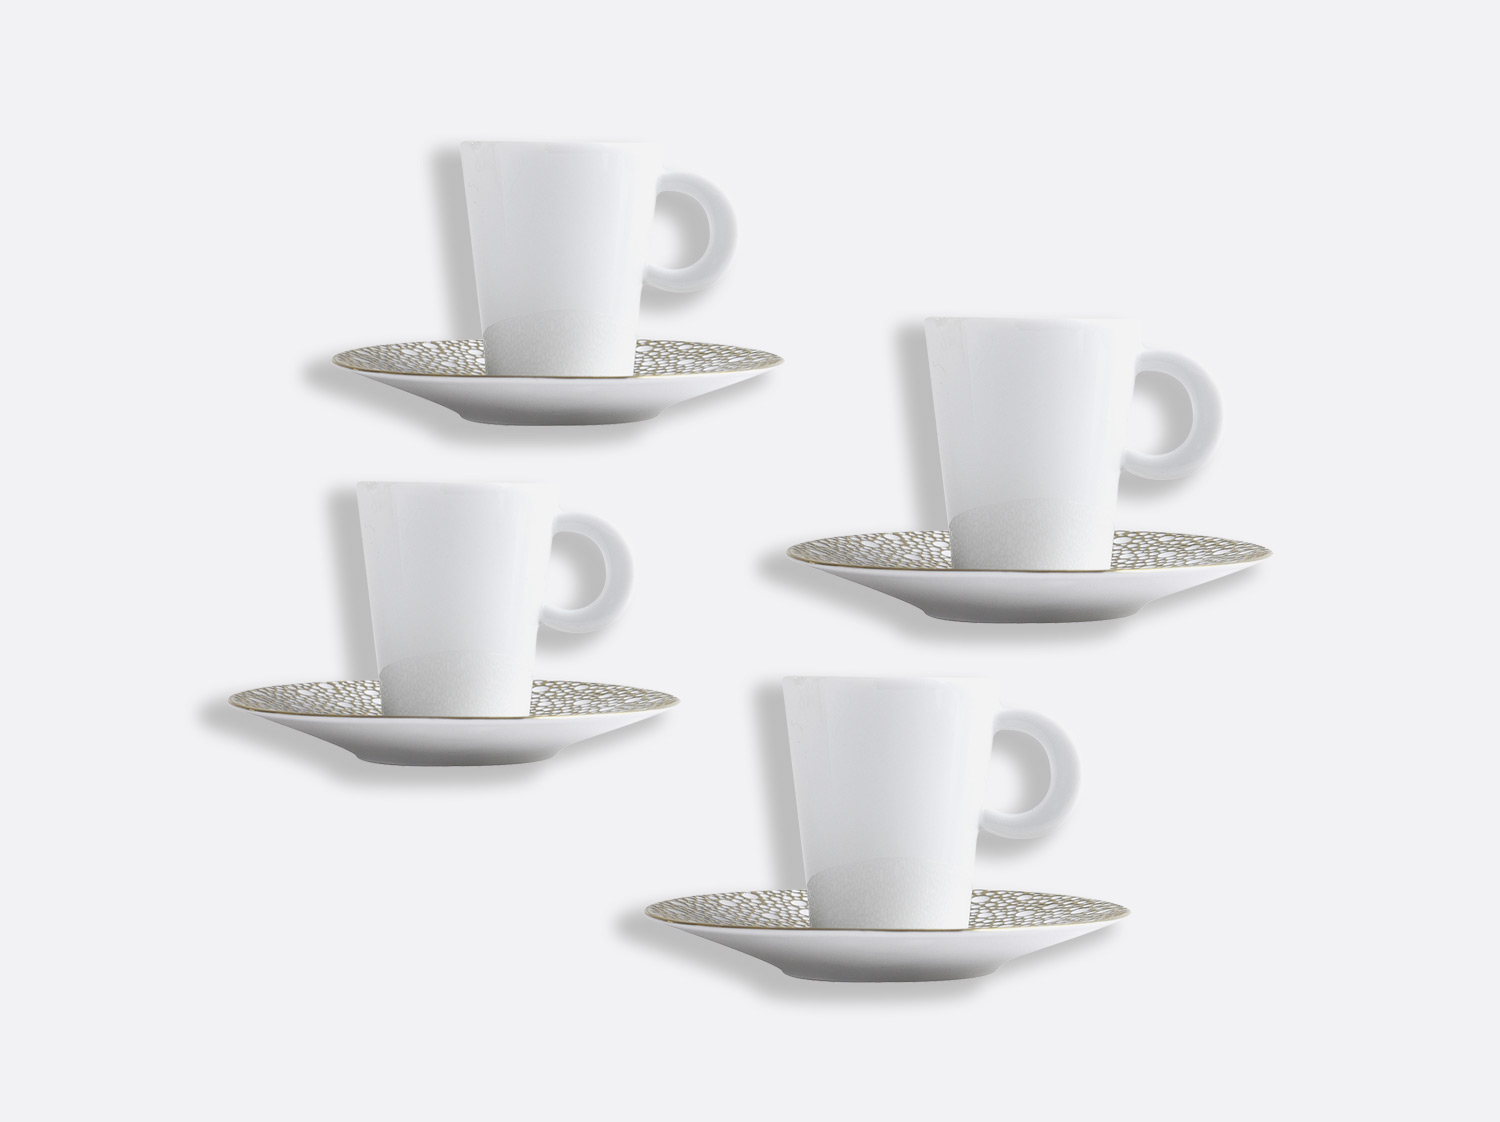 Coffret de tasses & soucoupes café 6 cl - Coffret de 4 en porcelaine de la collection Ecume Mordoré Bernardaud